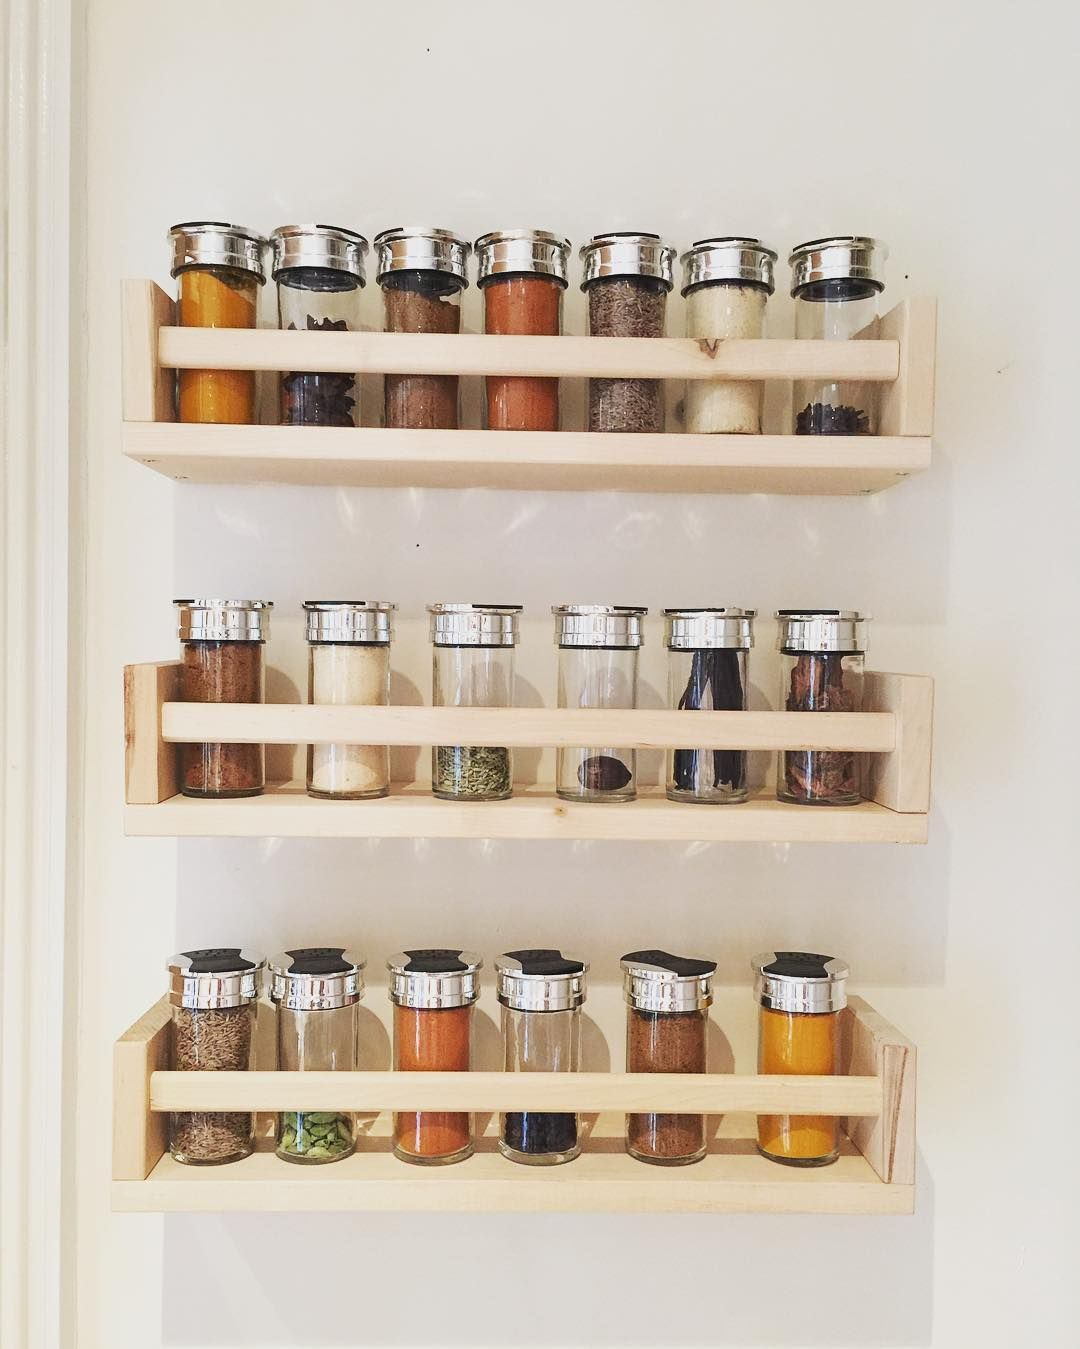 Creative Spice Storage 27 Spice Rack Ideas For Small Kitchen And Pantry Kitchen